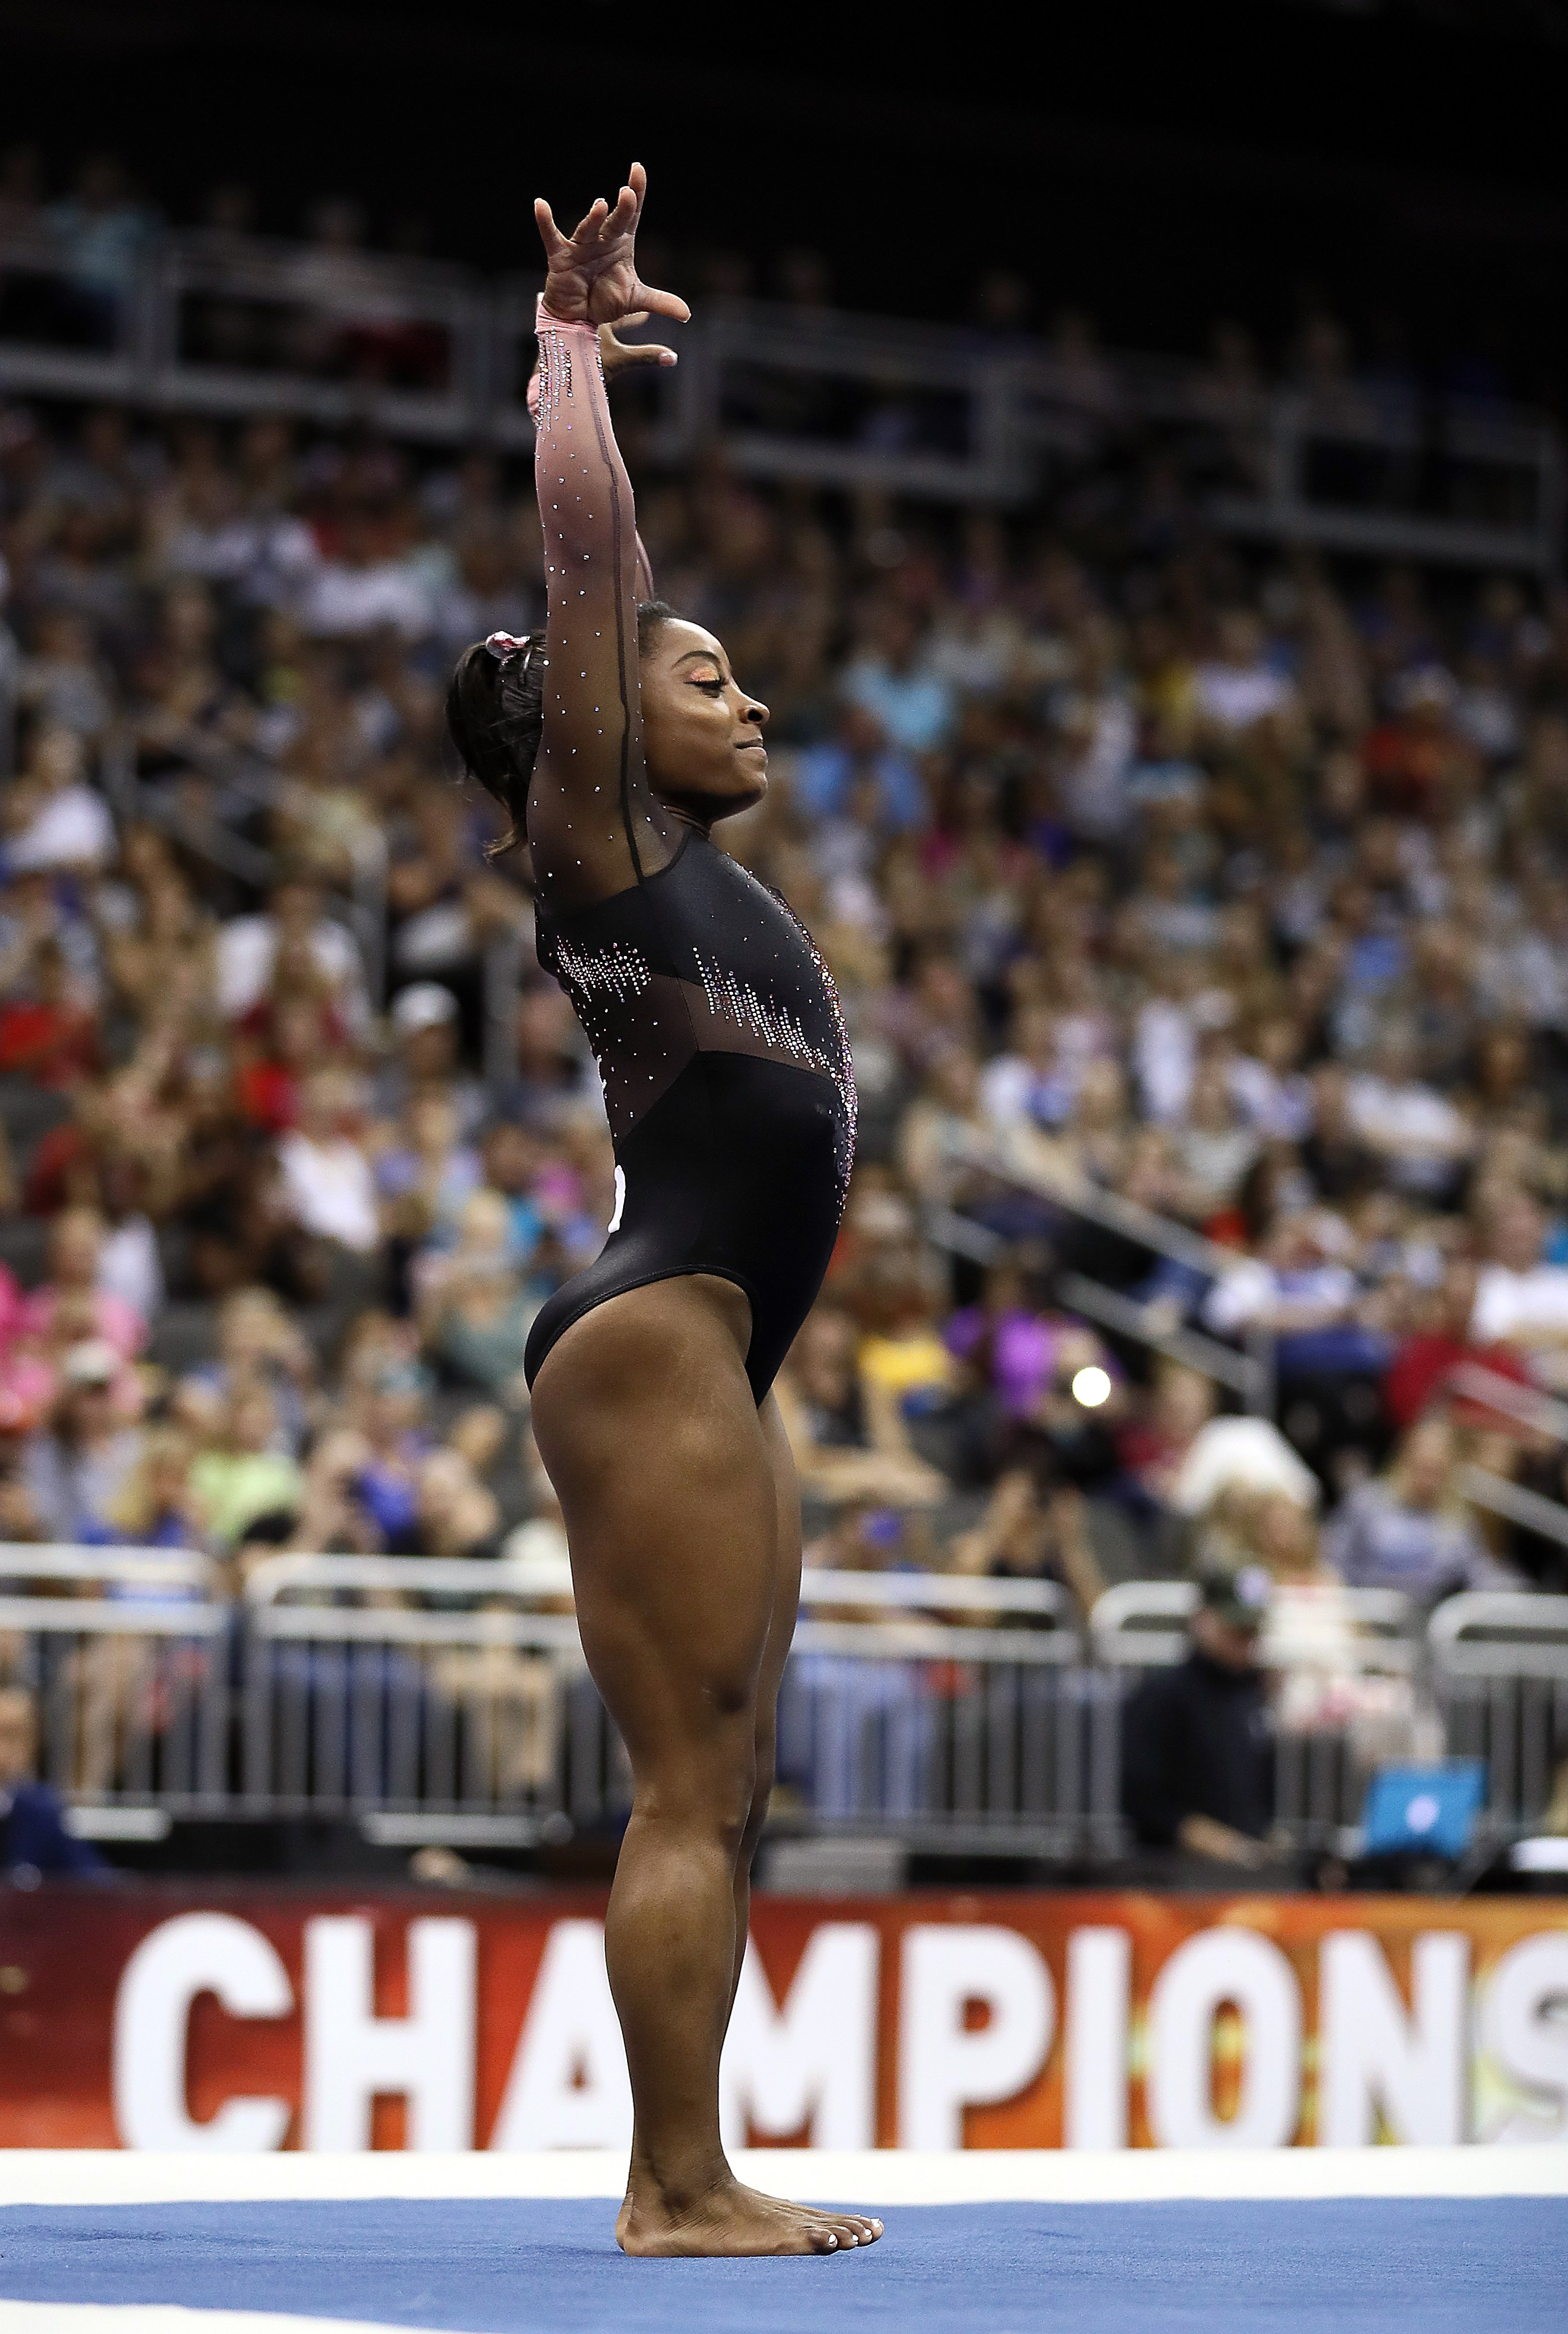 Simone Biles competes on floor exercise during Women's Senior competition of the U.S. Gymnastics Championships in Kansas City, Missouri on Aug. 11, 2019   Photo: Getty Images